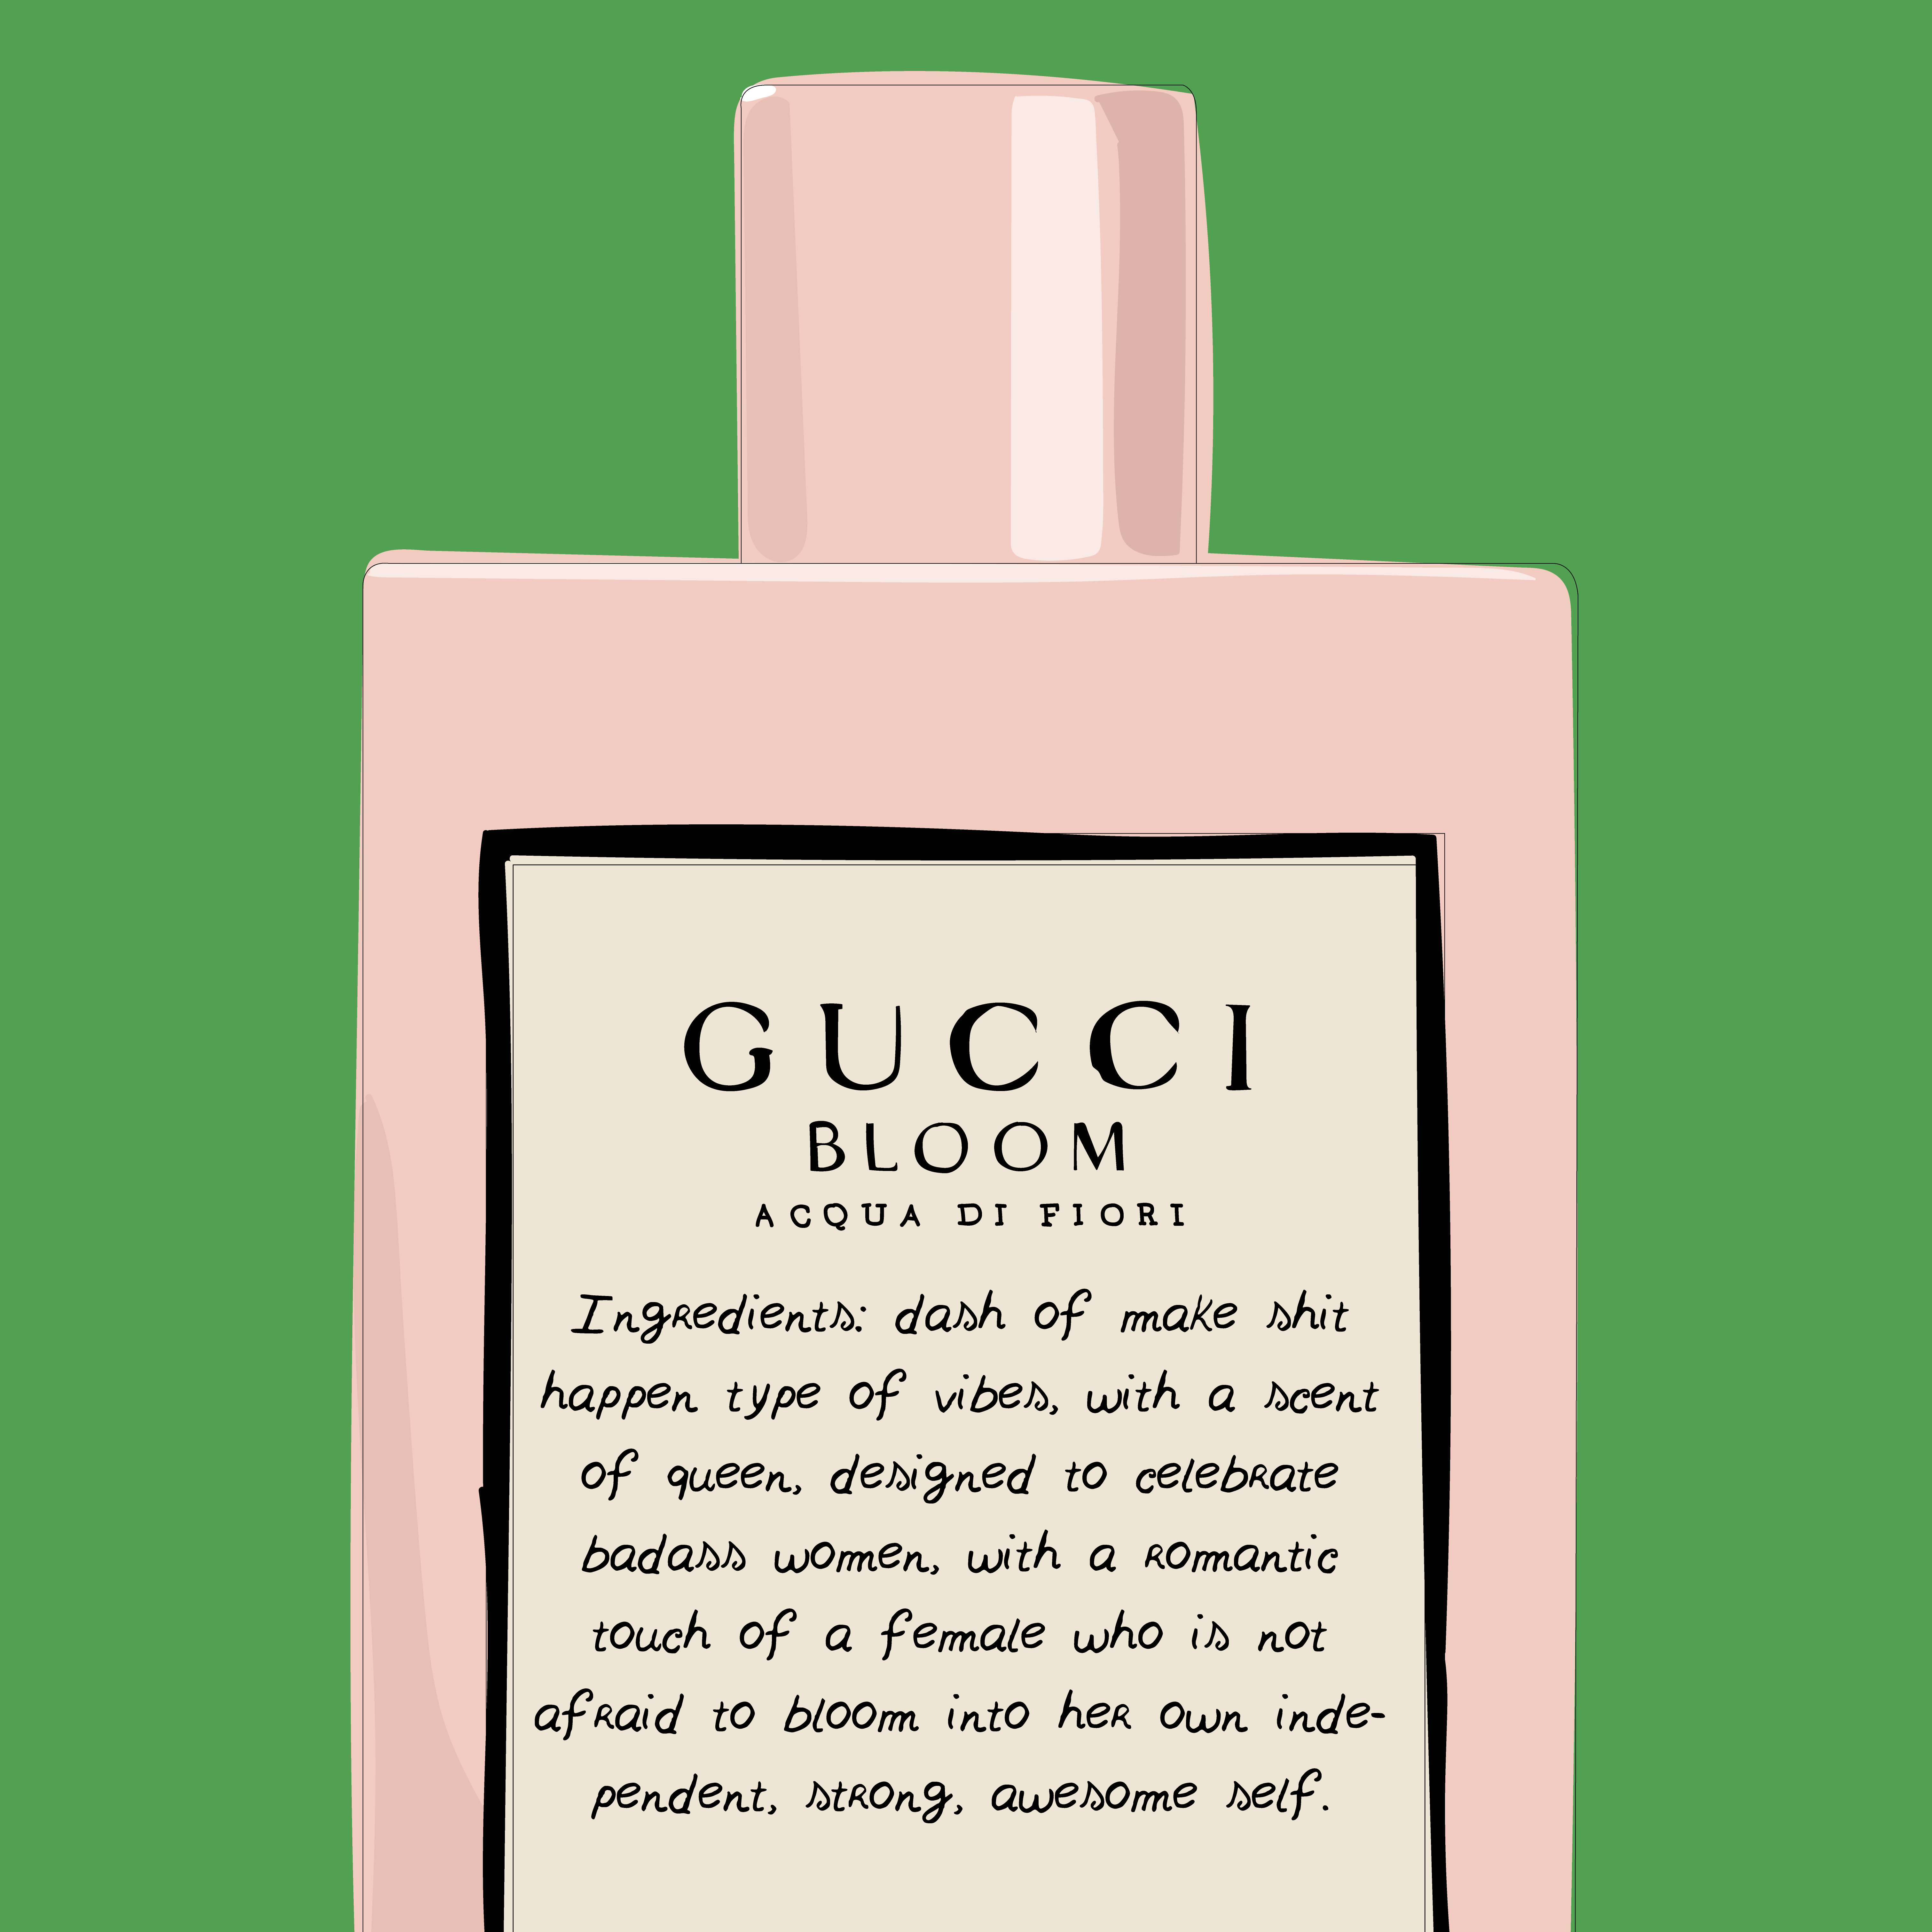 Gucci Bloom Digital Illustration By Claudia Argueta Check Out More Of Her Work On Vibesbyclaudia On Ig Fashion Fas Nyc Blogger La Bloggers Photo And Video